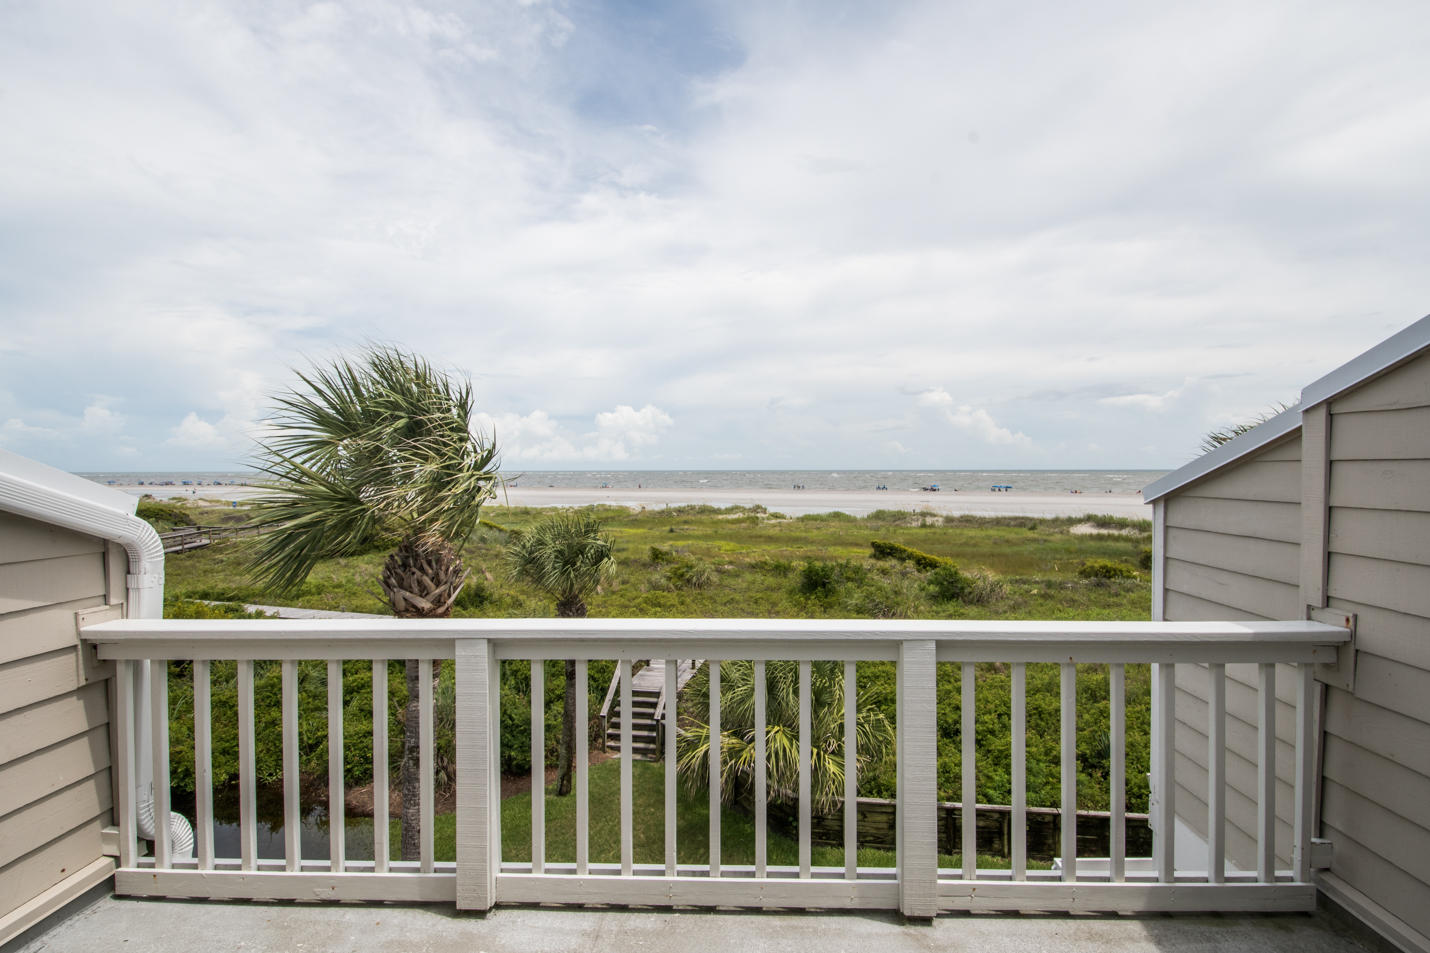 Beach Club Villas Homes For Sale - 66 Beach Club Villas, Isle of Palms, SC - 25